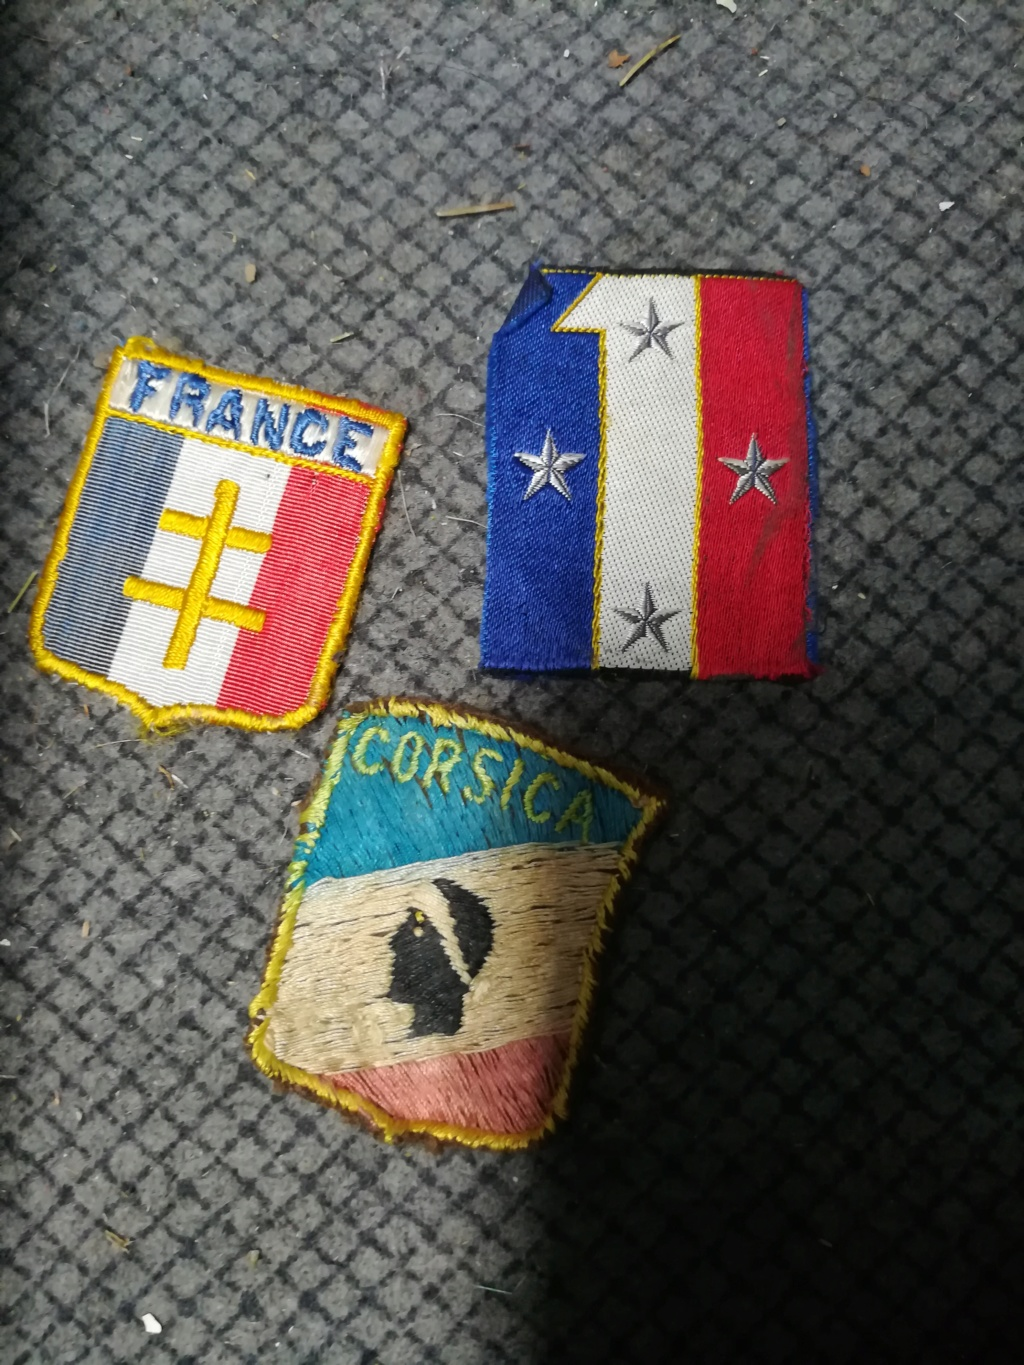 identification insigne  - Page 2 Img_2026